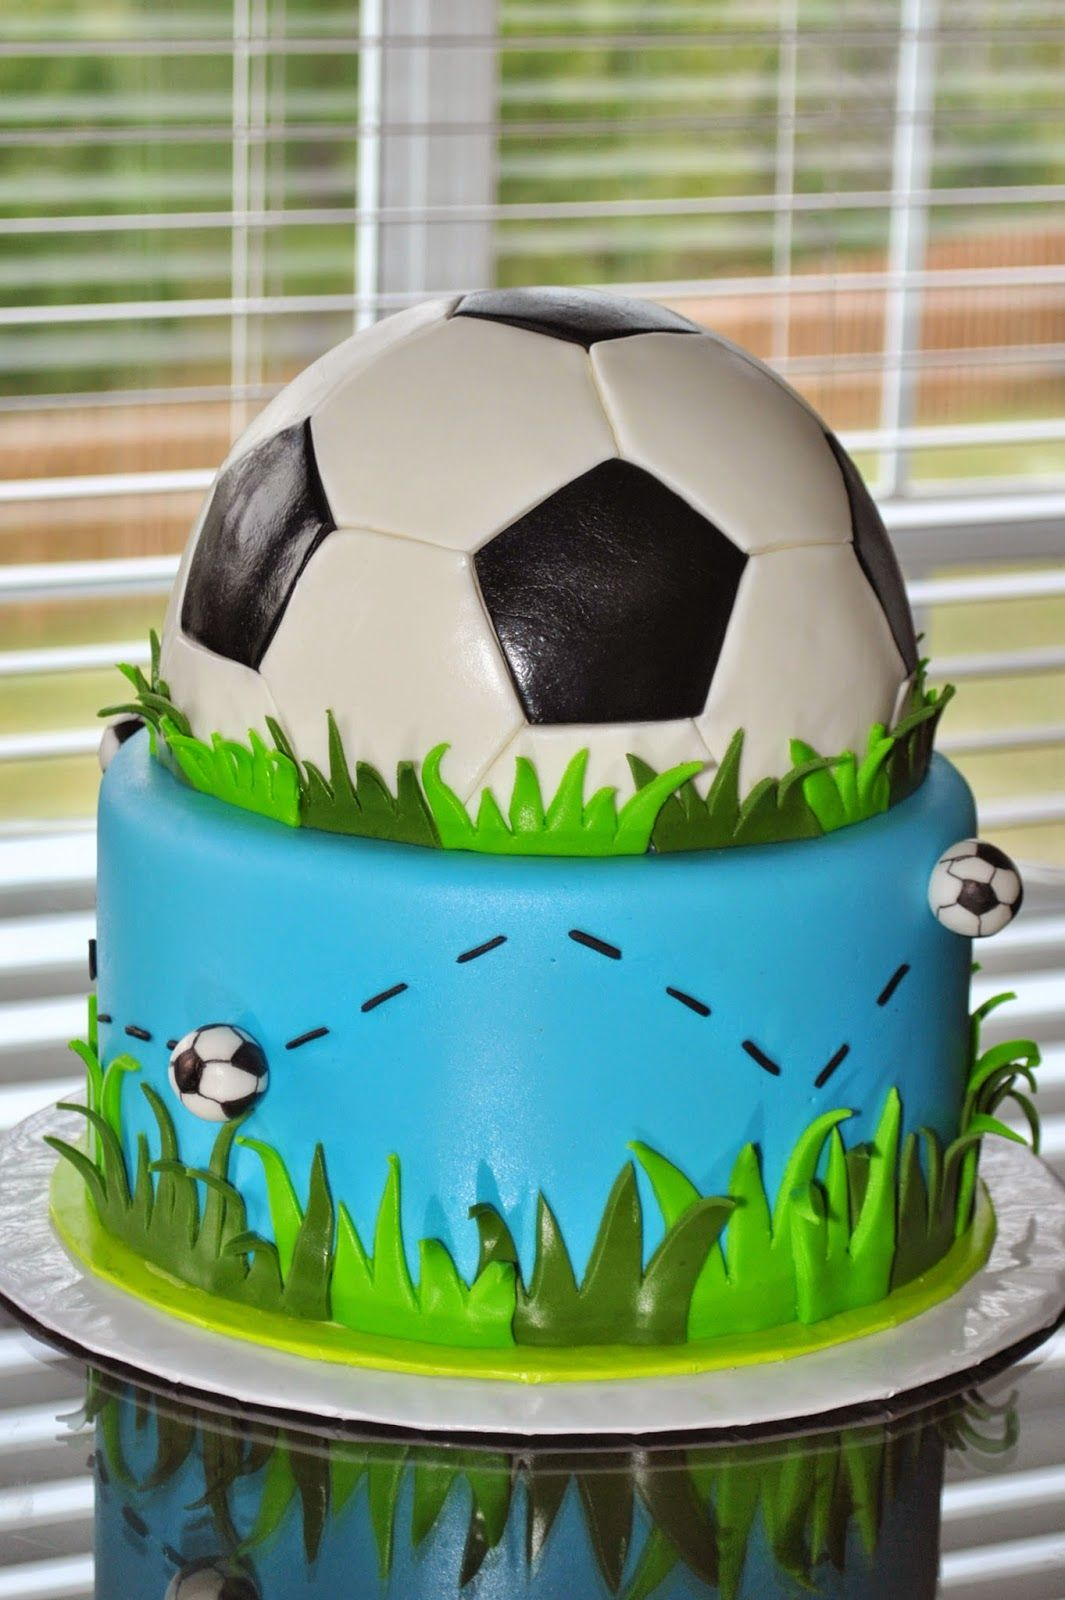 How To Decorate A Soccer Ball Cake Soccer Ball Cake More  Cakes  Pinterest  Soccer Ball Cake